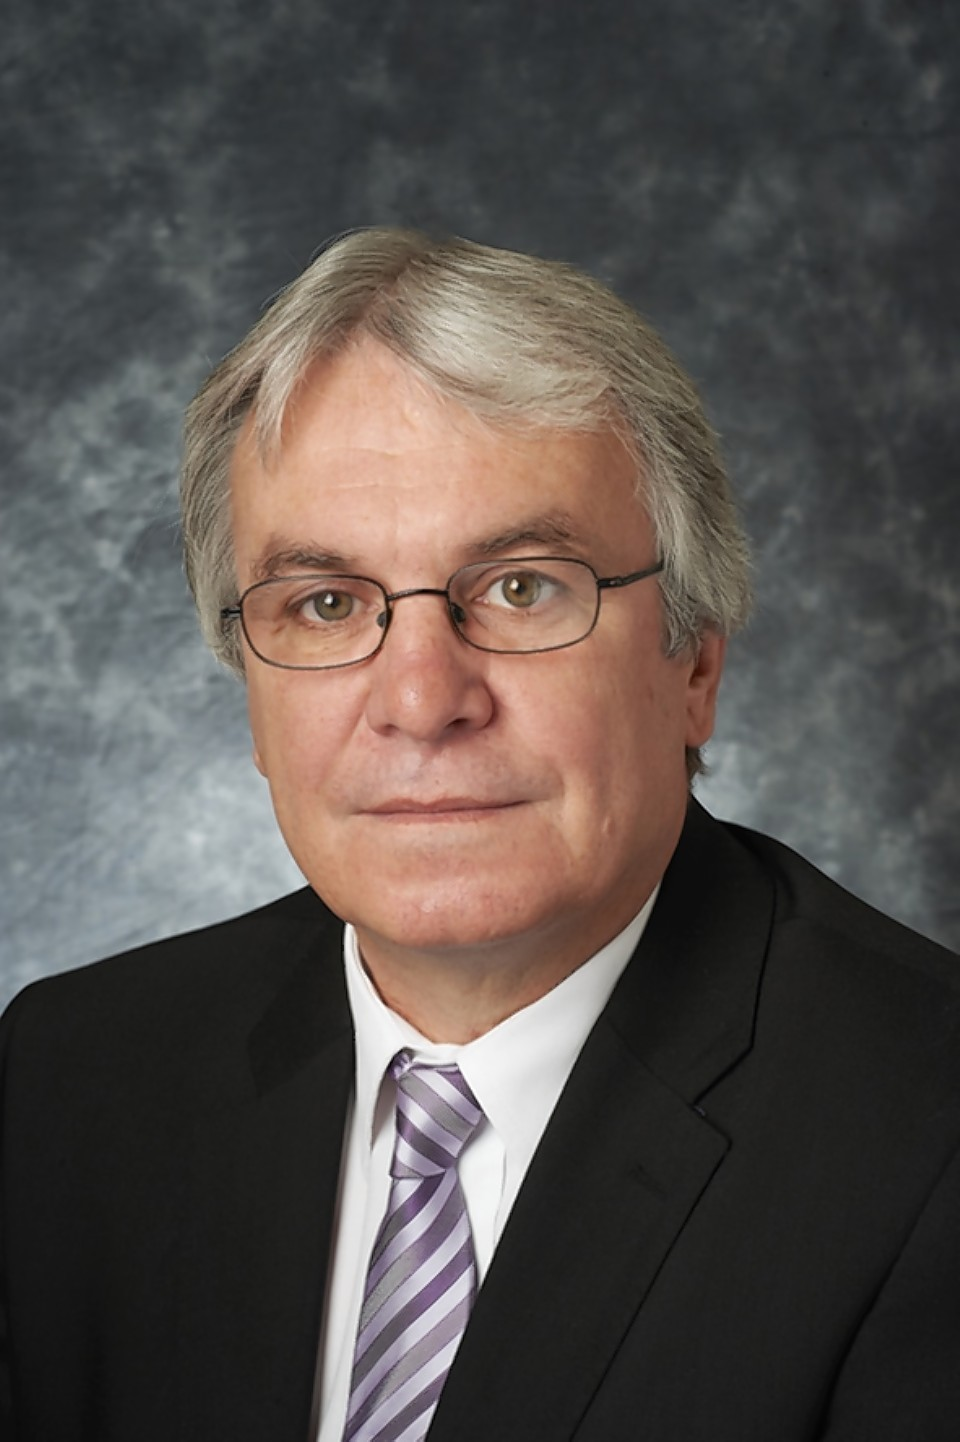 City councillor Graham Ross